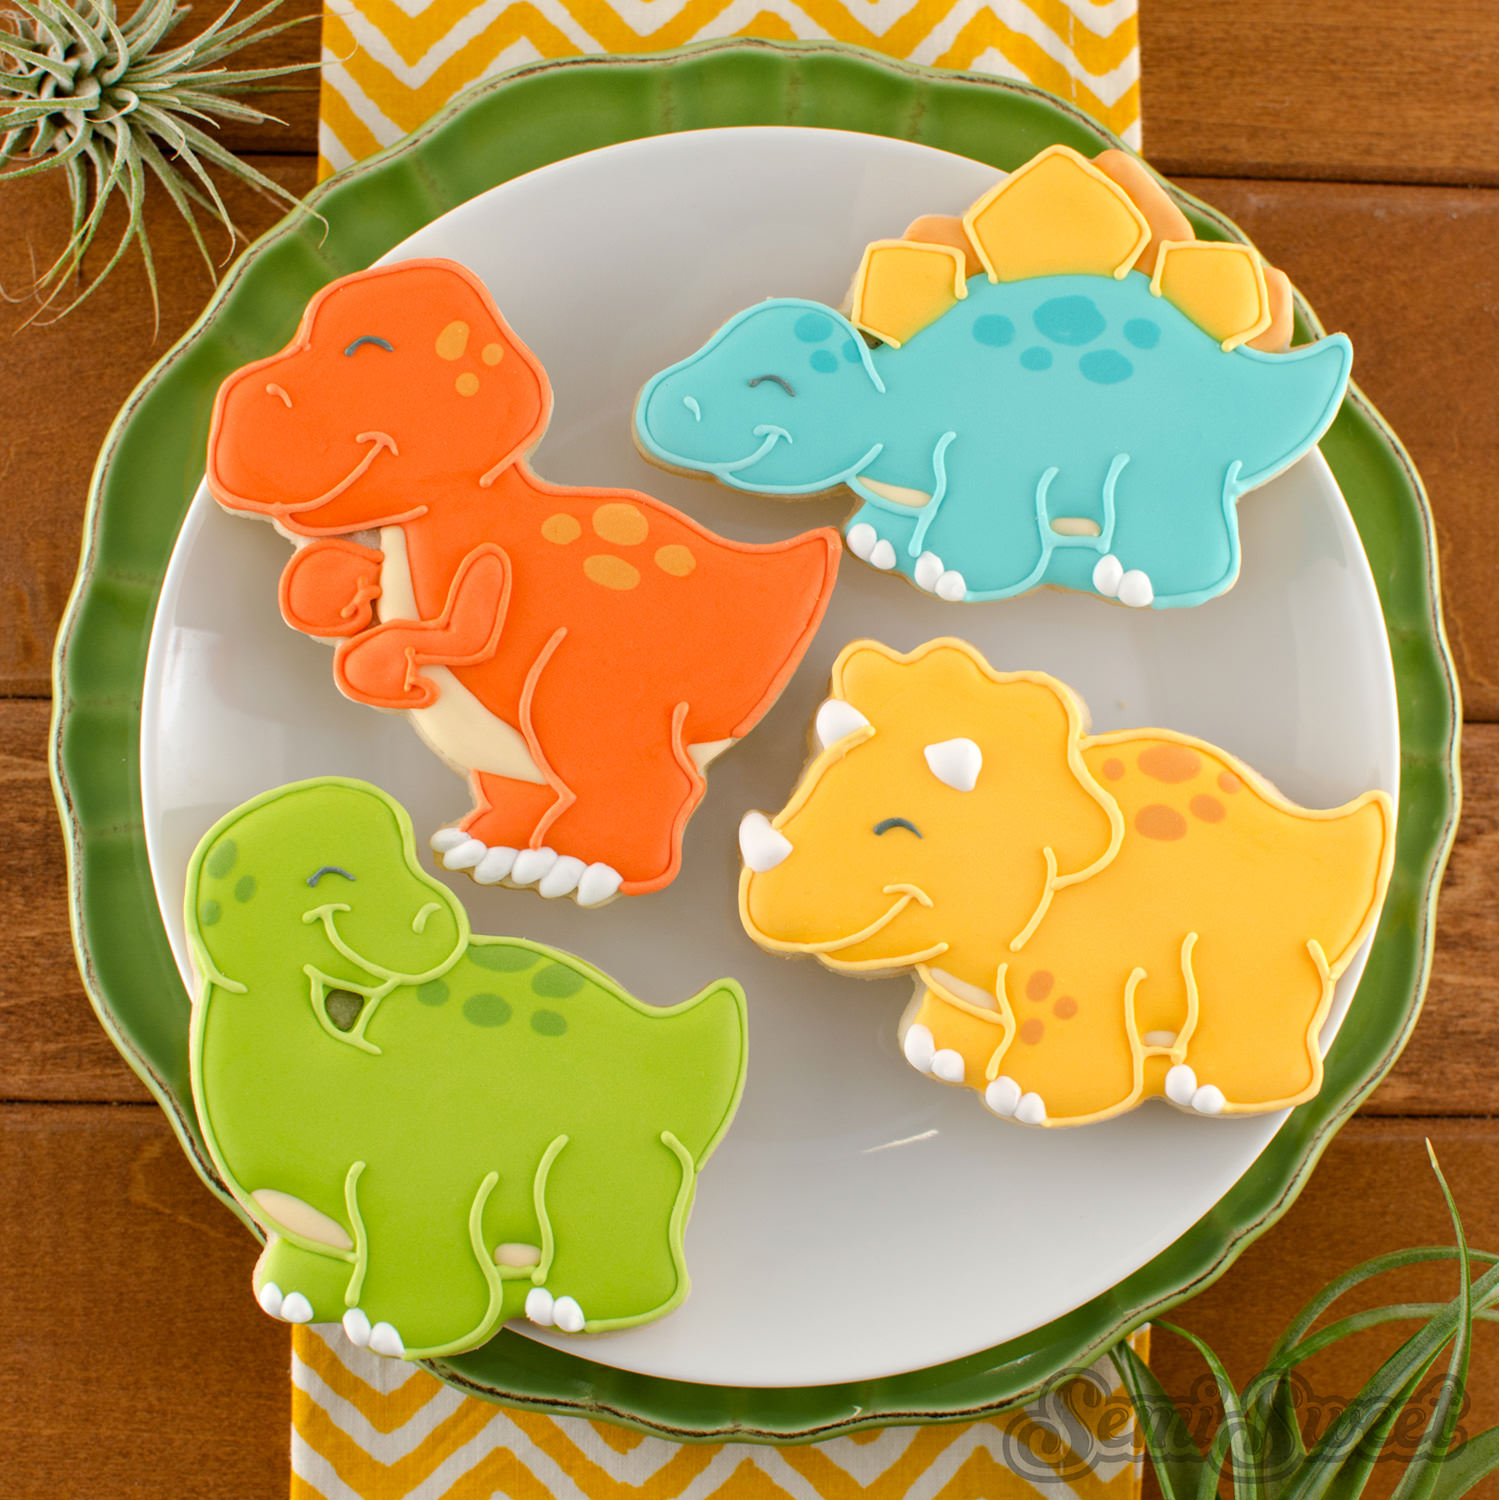 How to Make T-Rex Dinosaur Cookies